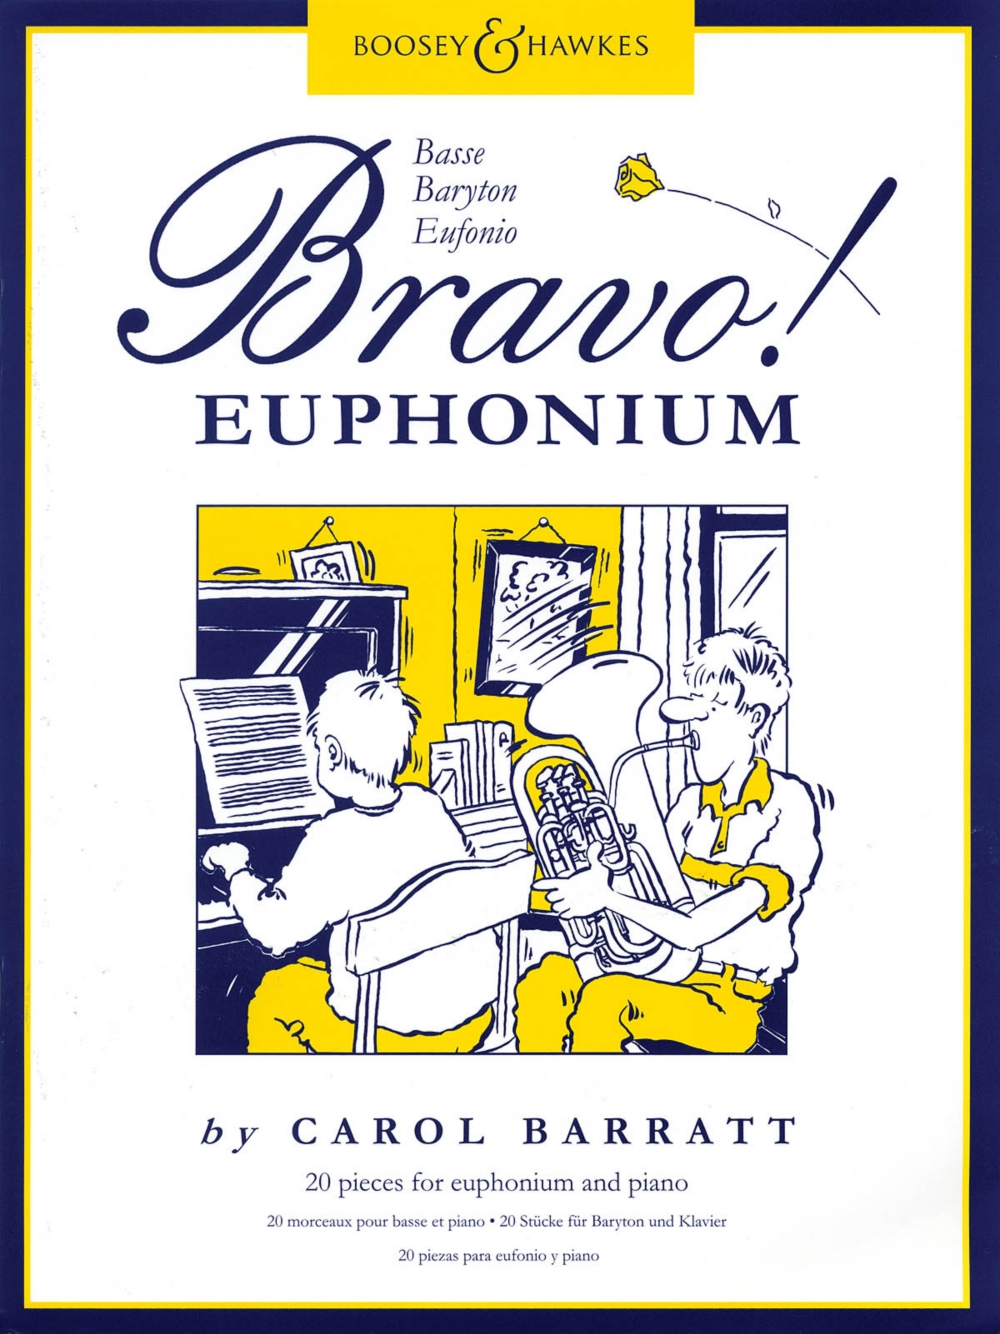 Boosey and Hawkes Bravo! Euphonium (20 Pieces for Euphonium and Piano) Boosey & Hawkes... by Boosey and Hawkes